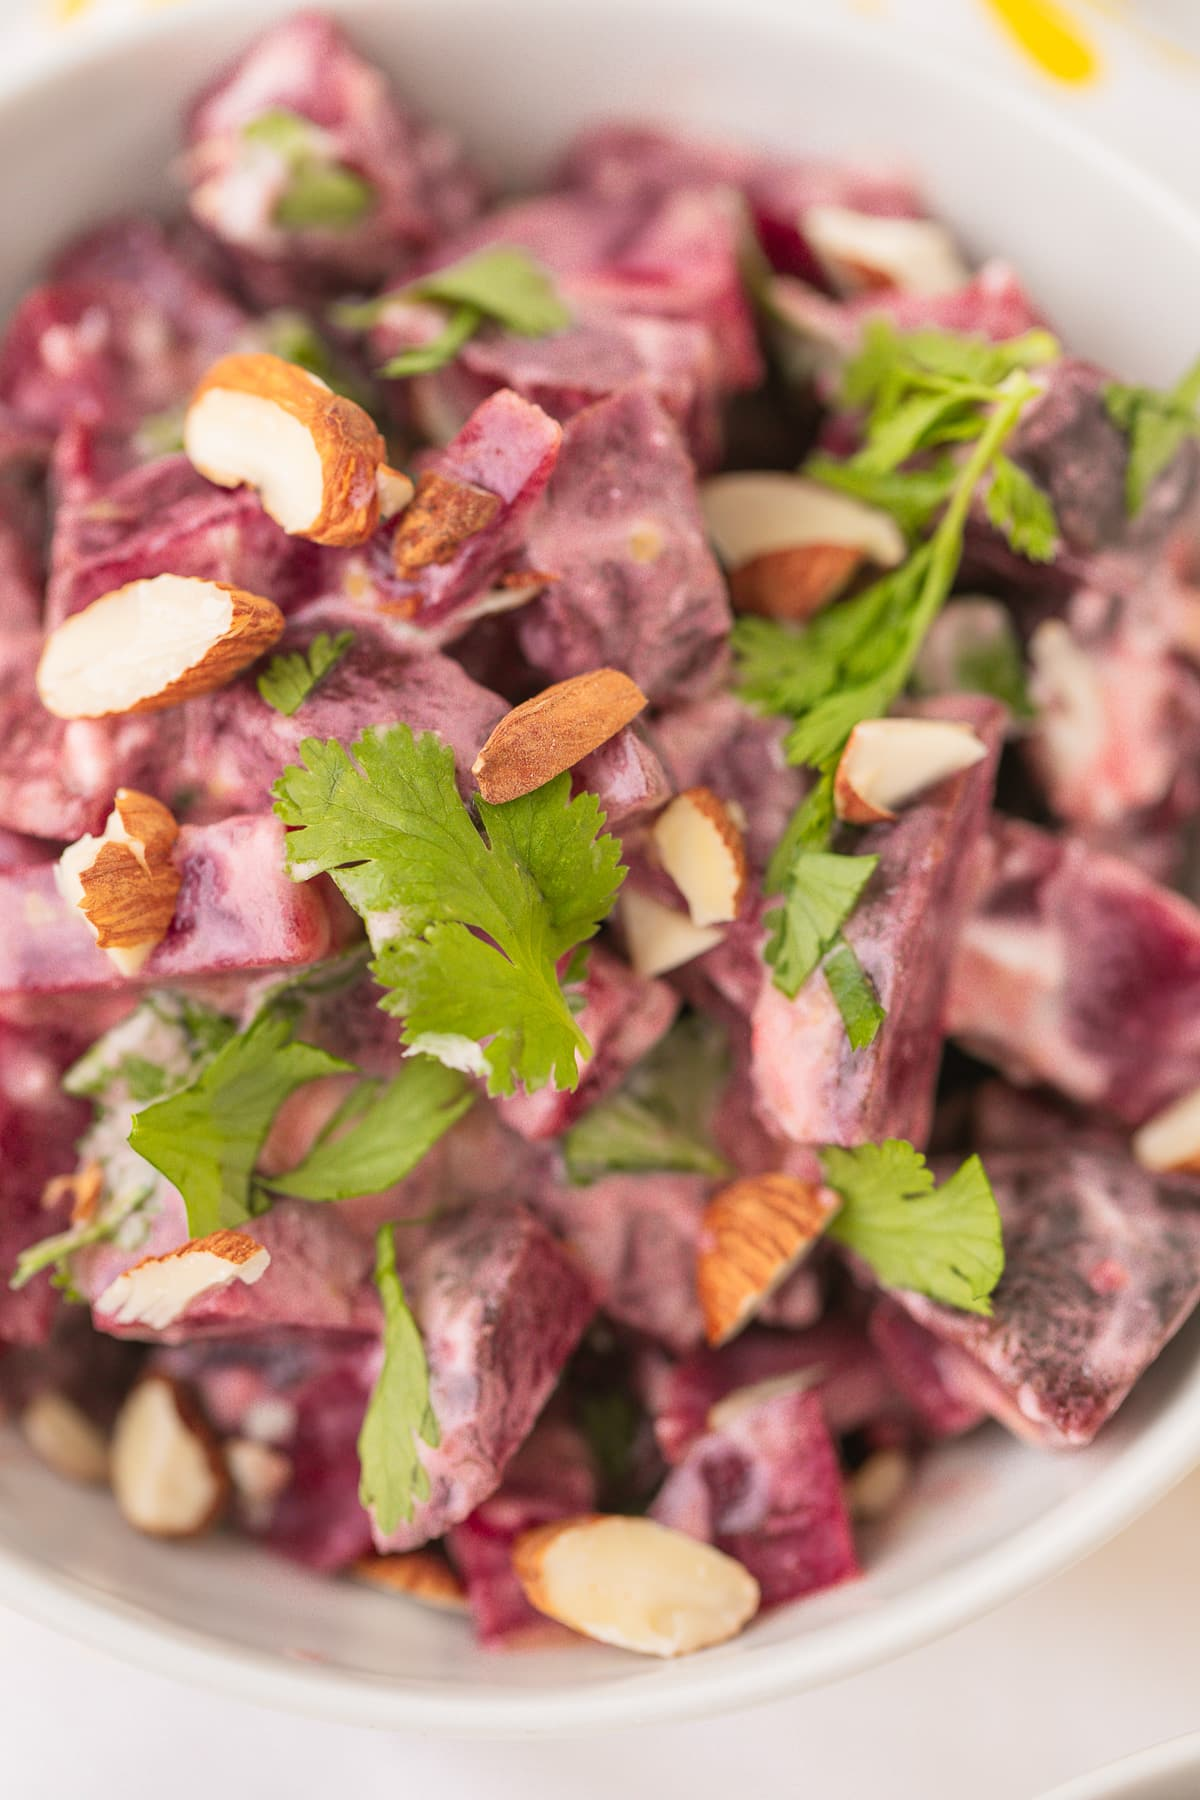 tossed beet salad with chopped cilantro on top